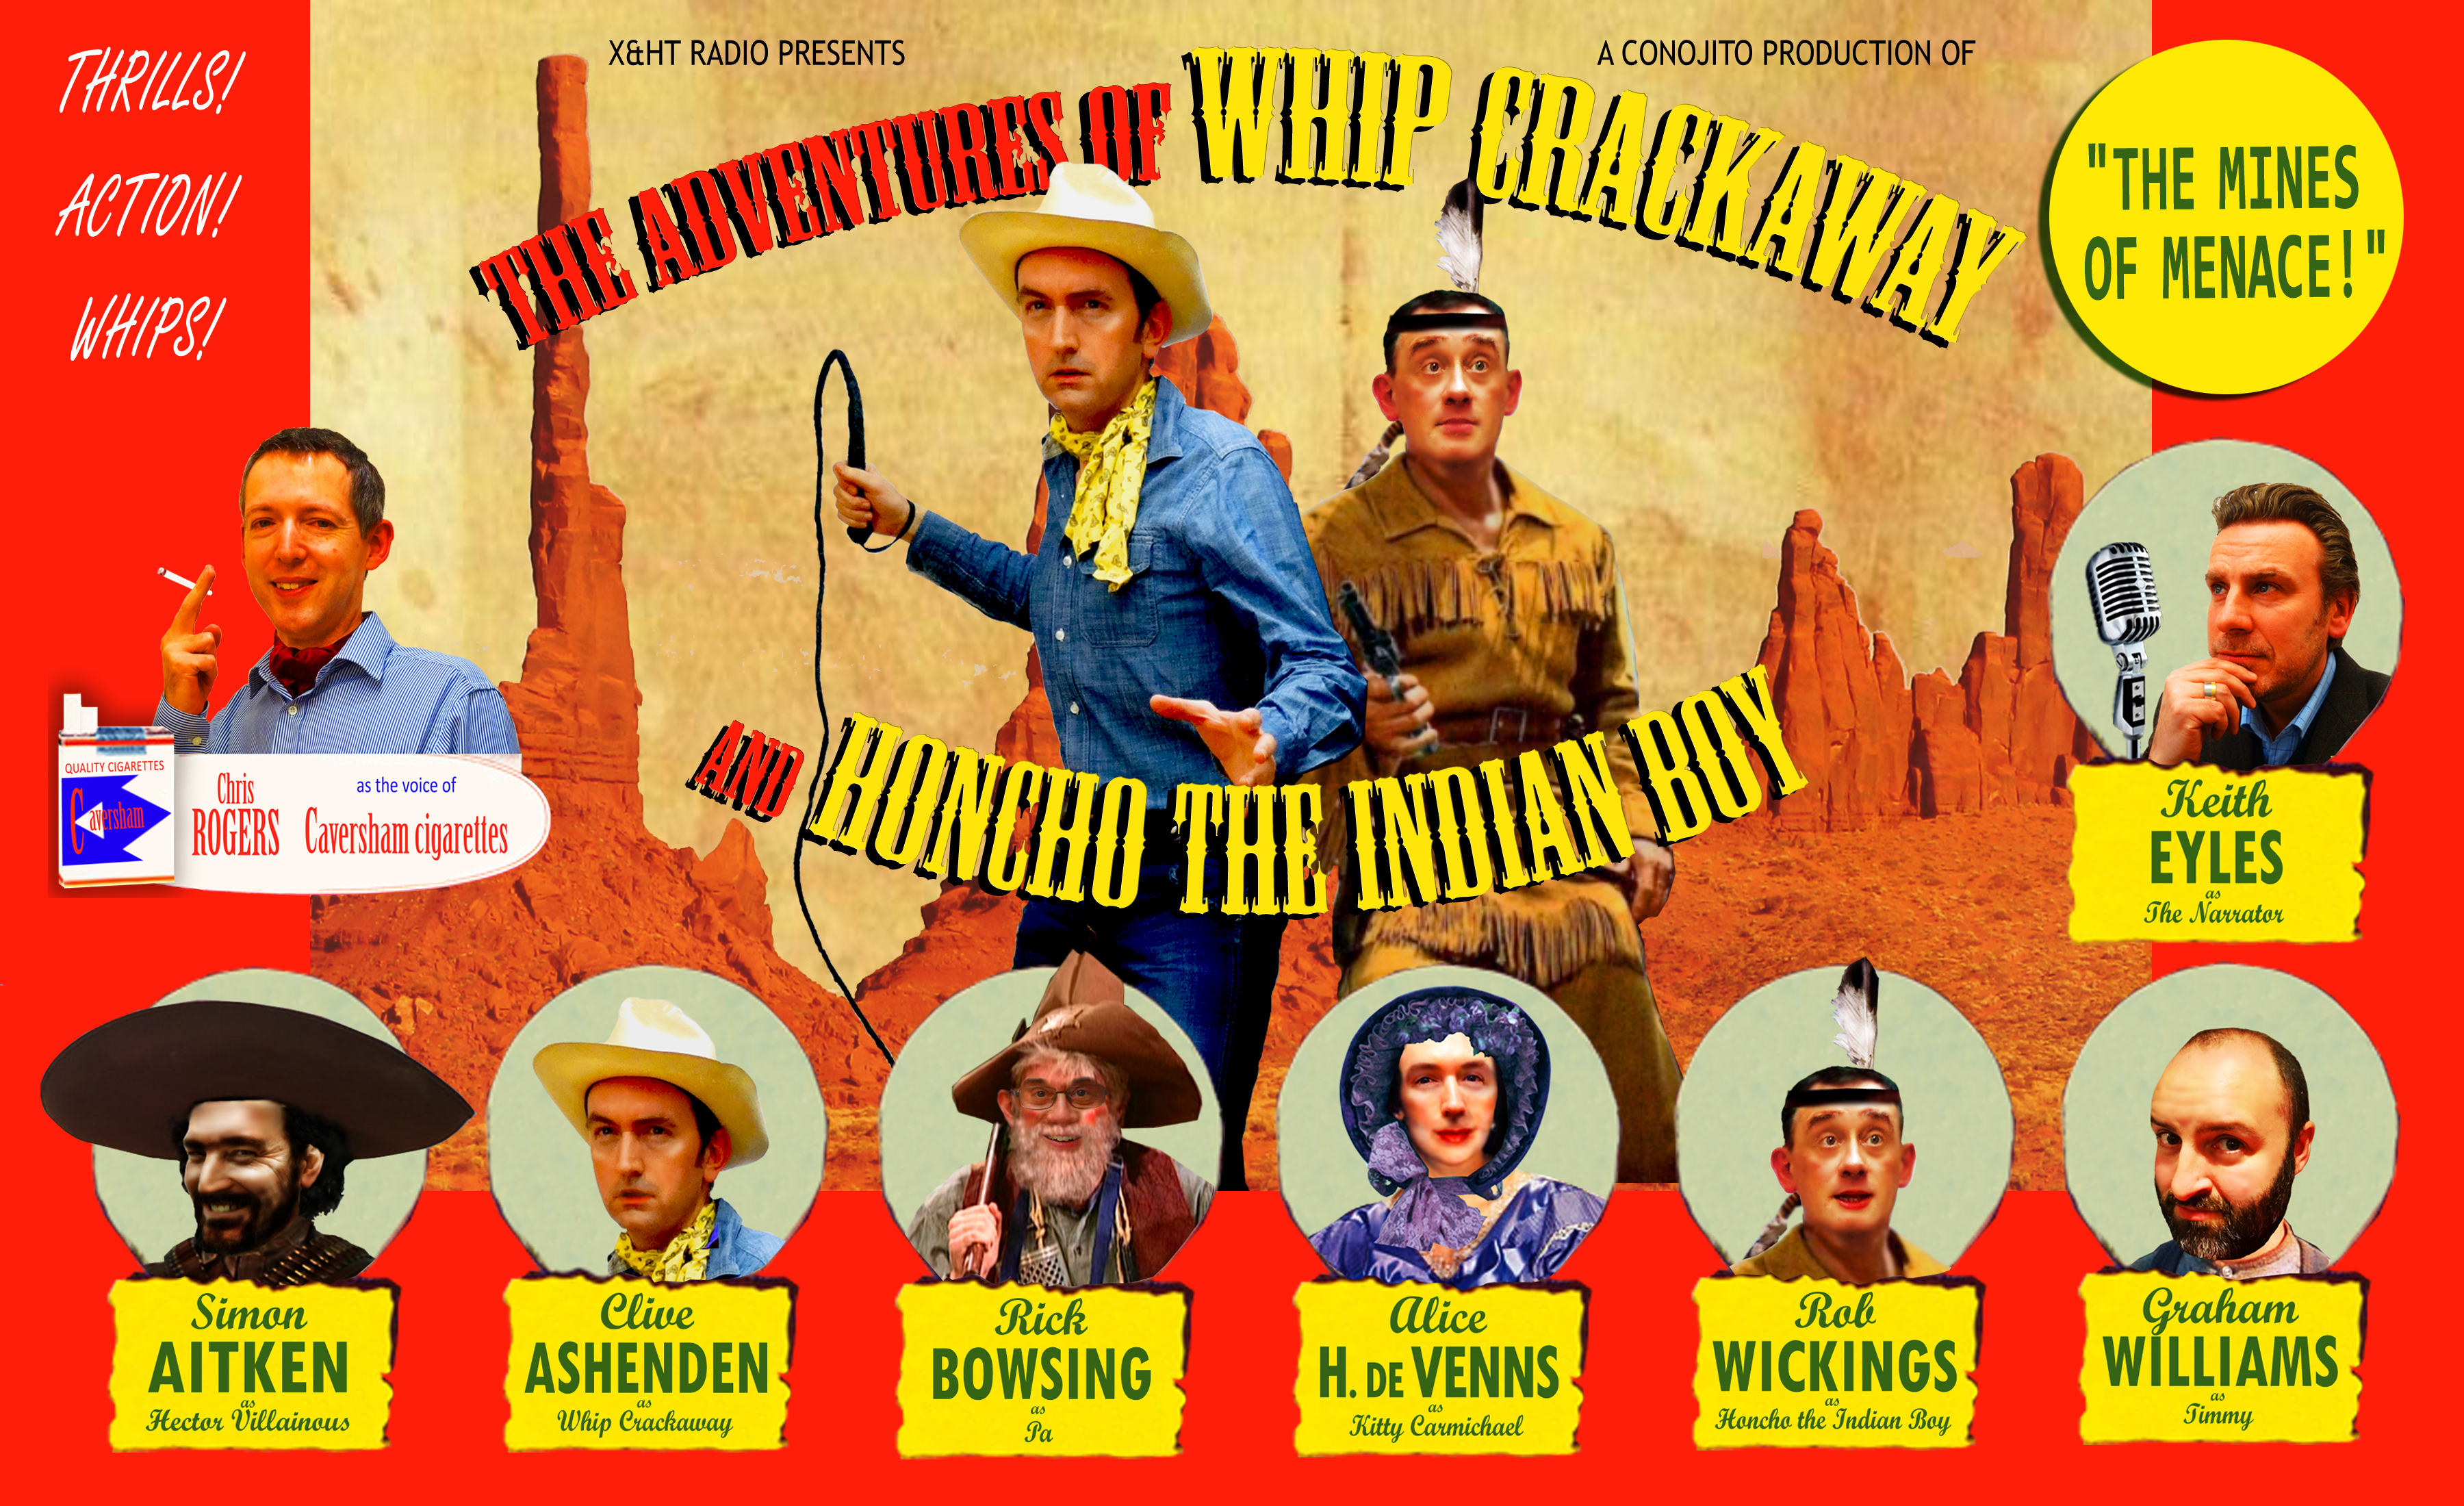 Artwork for The Adventures Of Whip Crackaway And Honcho The Indian Boy